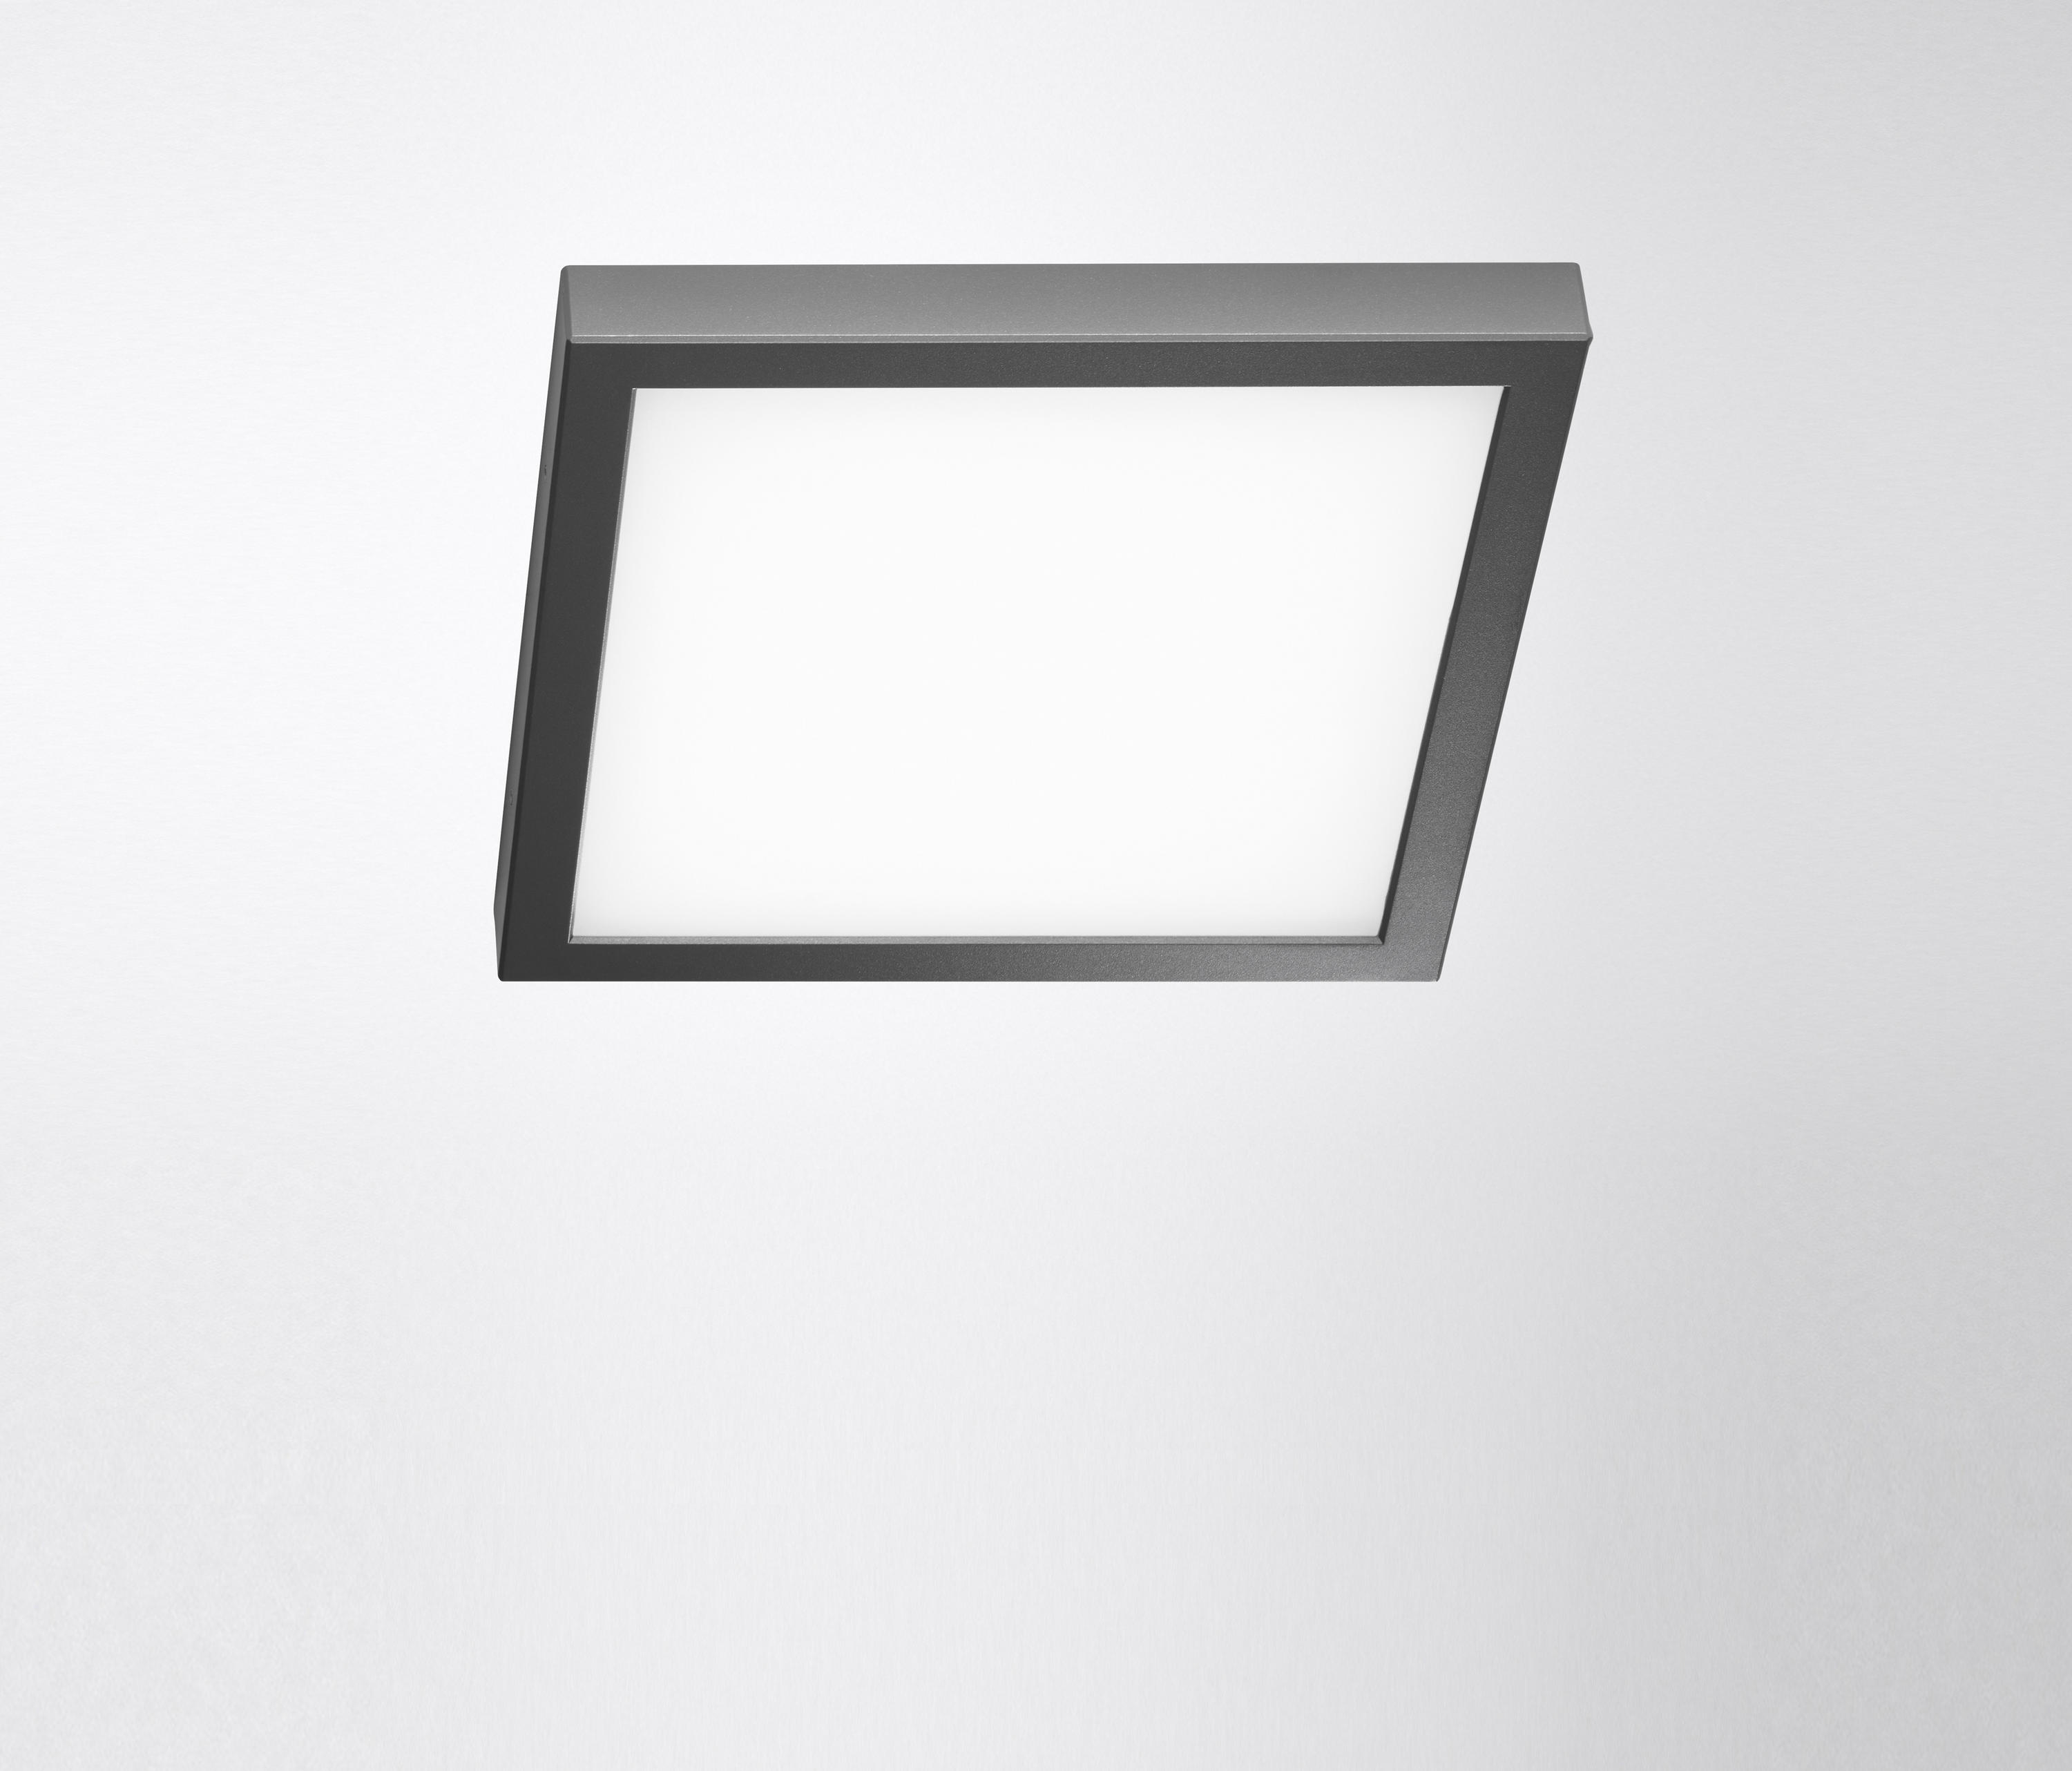 Trilux Led Warehouse Lighting: SKEO PURA LED 40 - General Lighting From Trilux